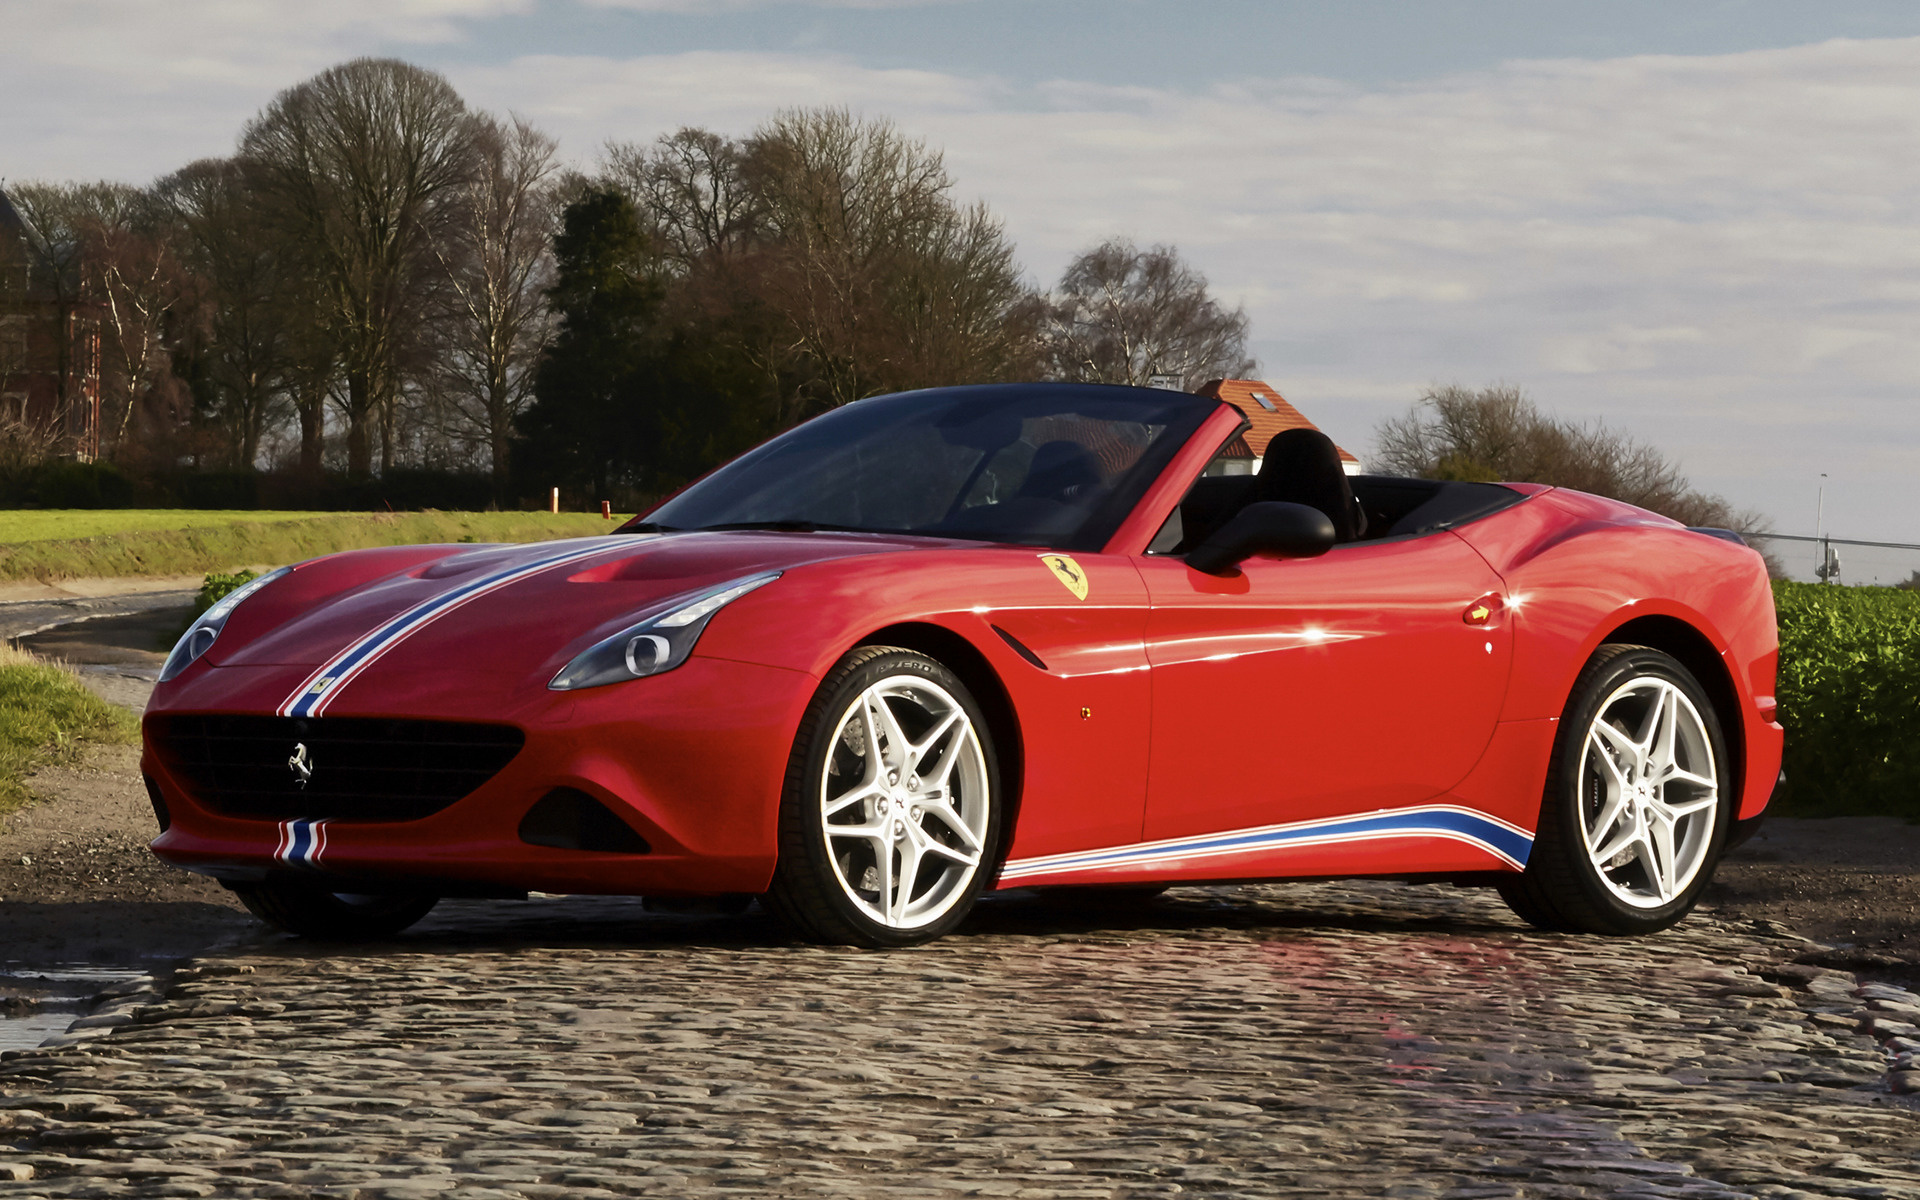 2016 Ferrari California T Tailor Made 24 Heures Spa - Wallpapers And HD Images